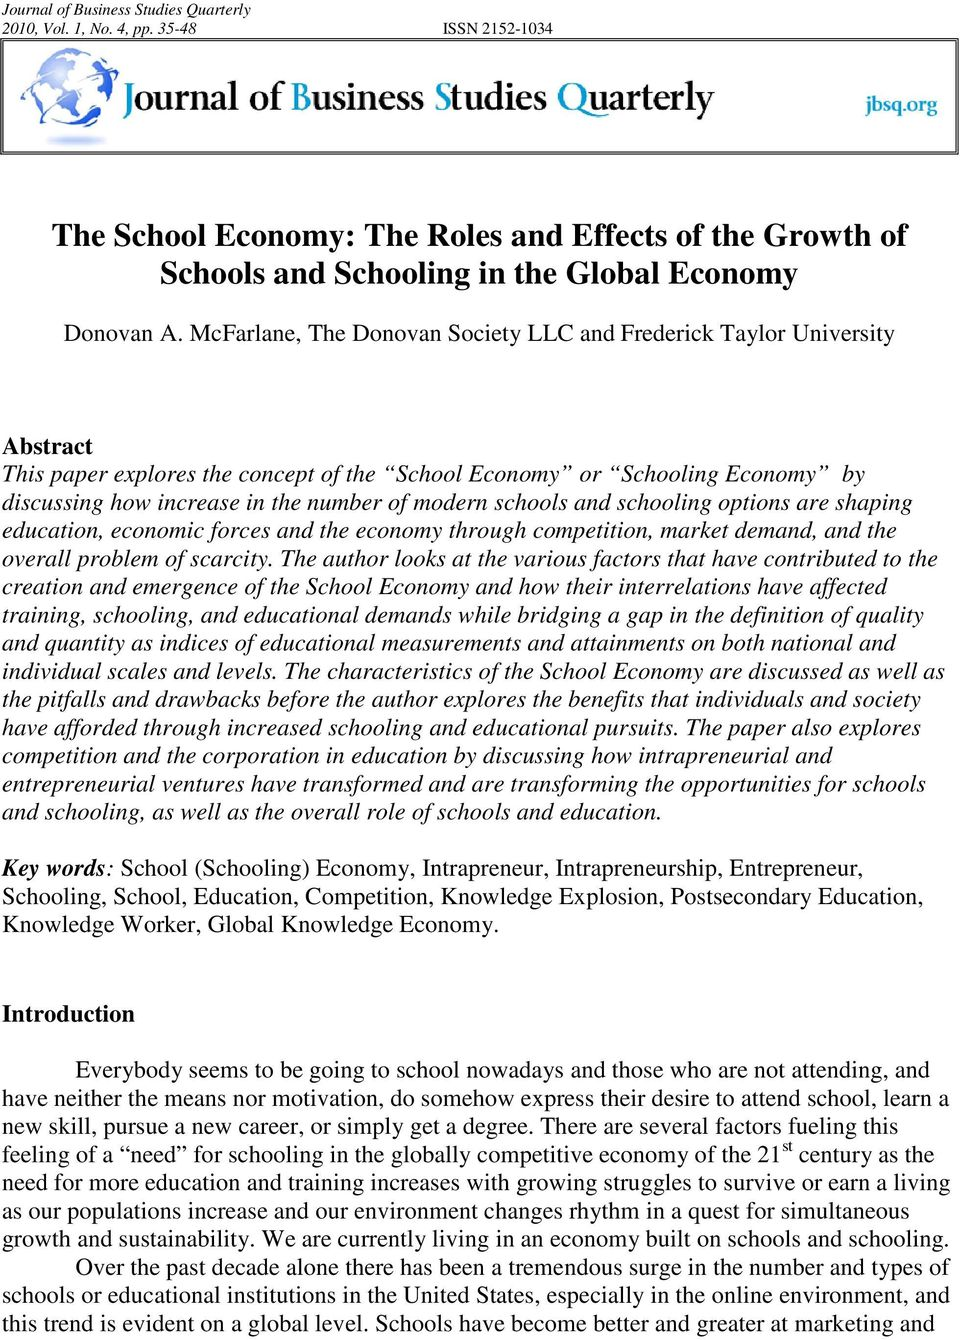 modern schools and schooling options are shaping education, economic forces and the economy through competition, market demand, and the overall problem of scarcity.